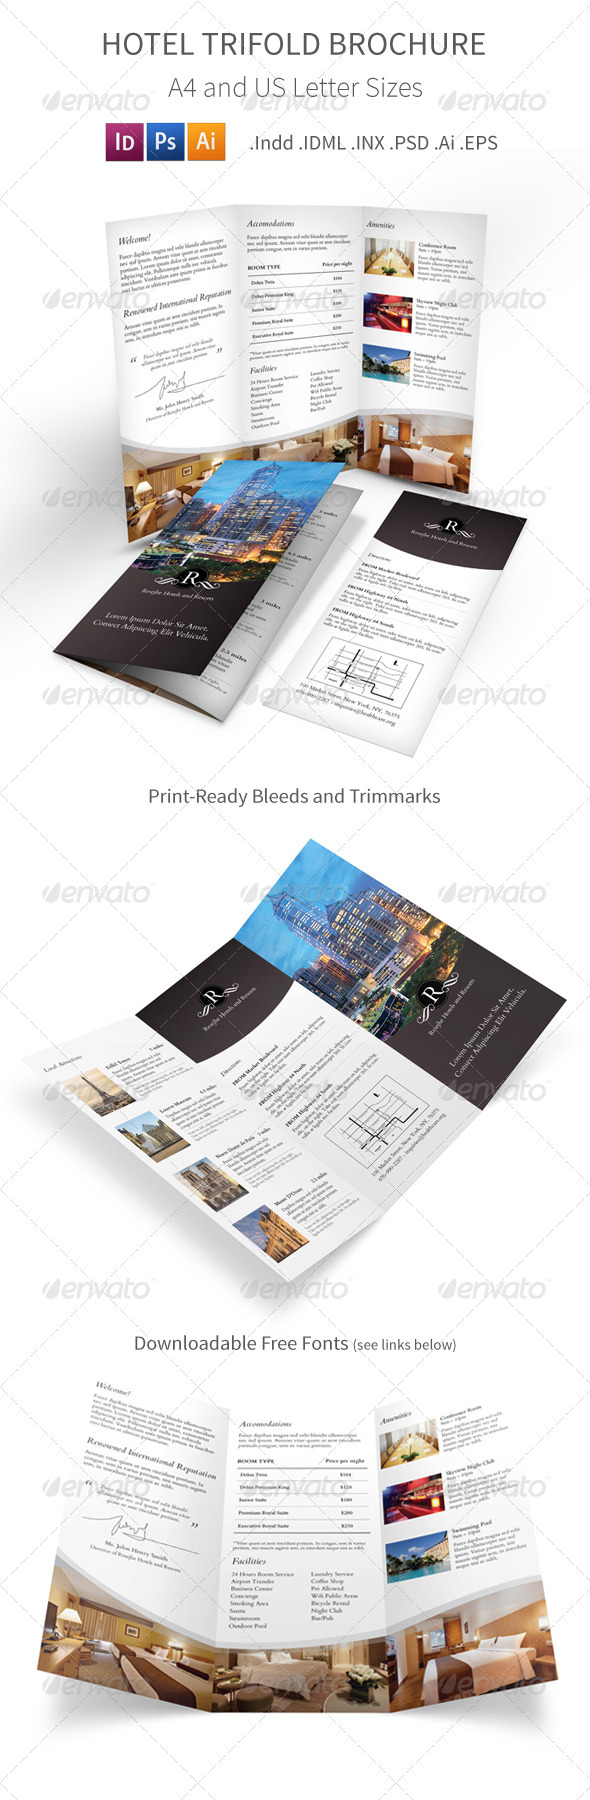 Hotel Trifold Brochure